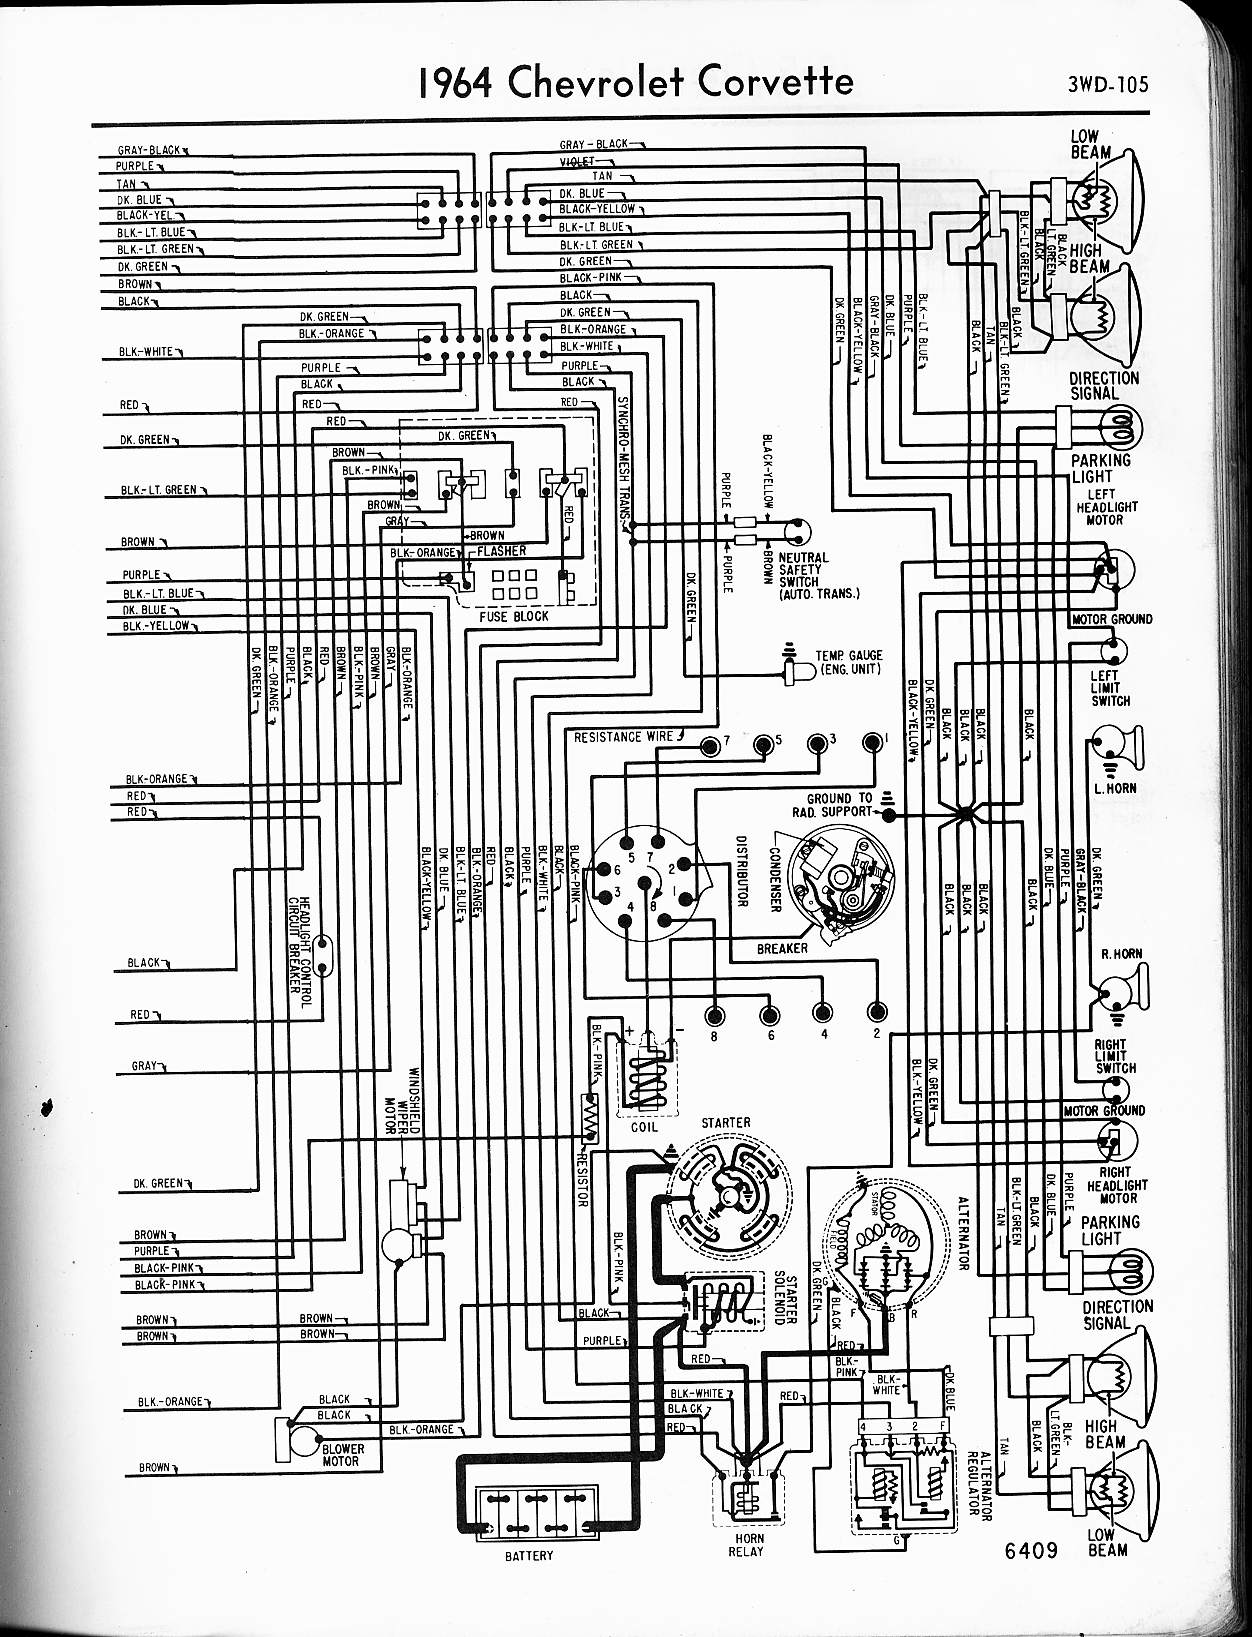 MWireChev64_3WD 105 57 65 chevy wiring diagrams 1964 chevy truck wiring diagram at alyssarenee.co